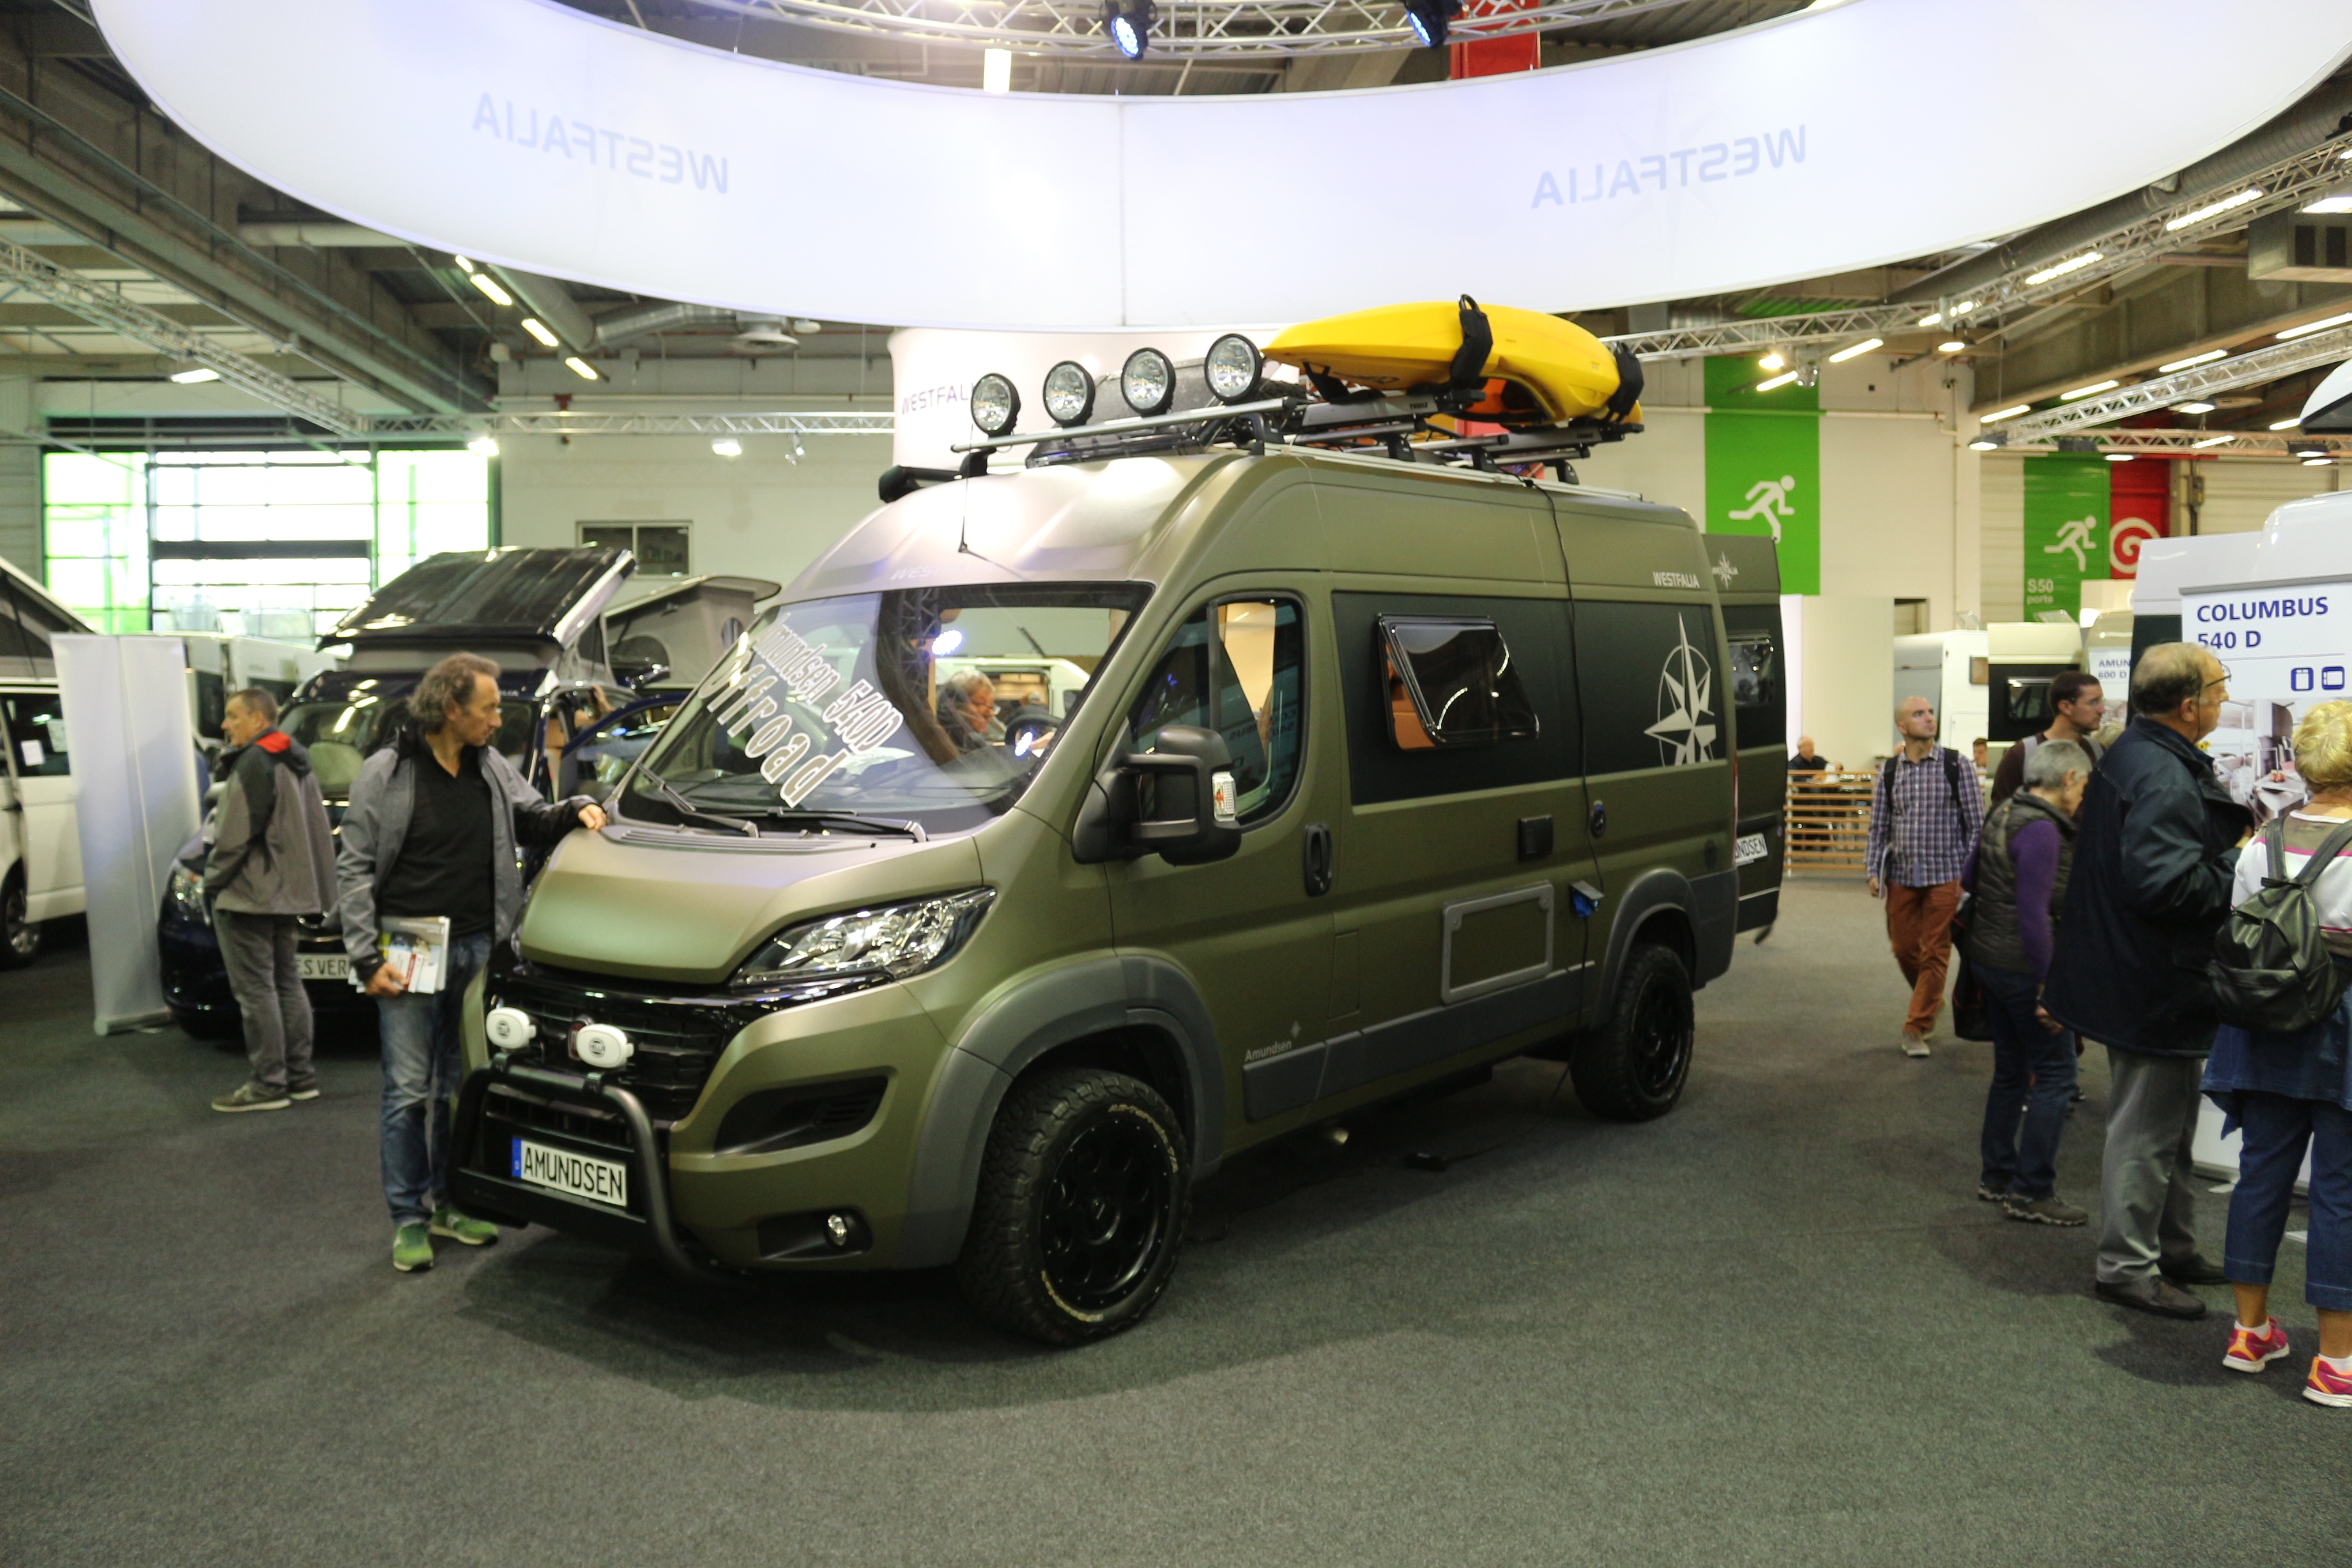 Salon des v hicules de loisirs la star c 39 est le camping car for Salon camping car paris